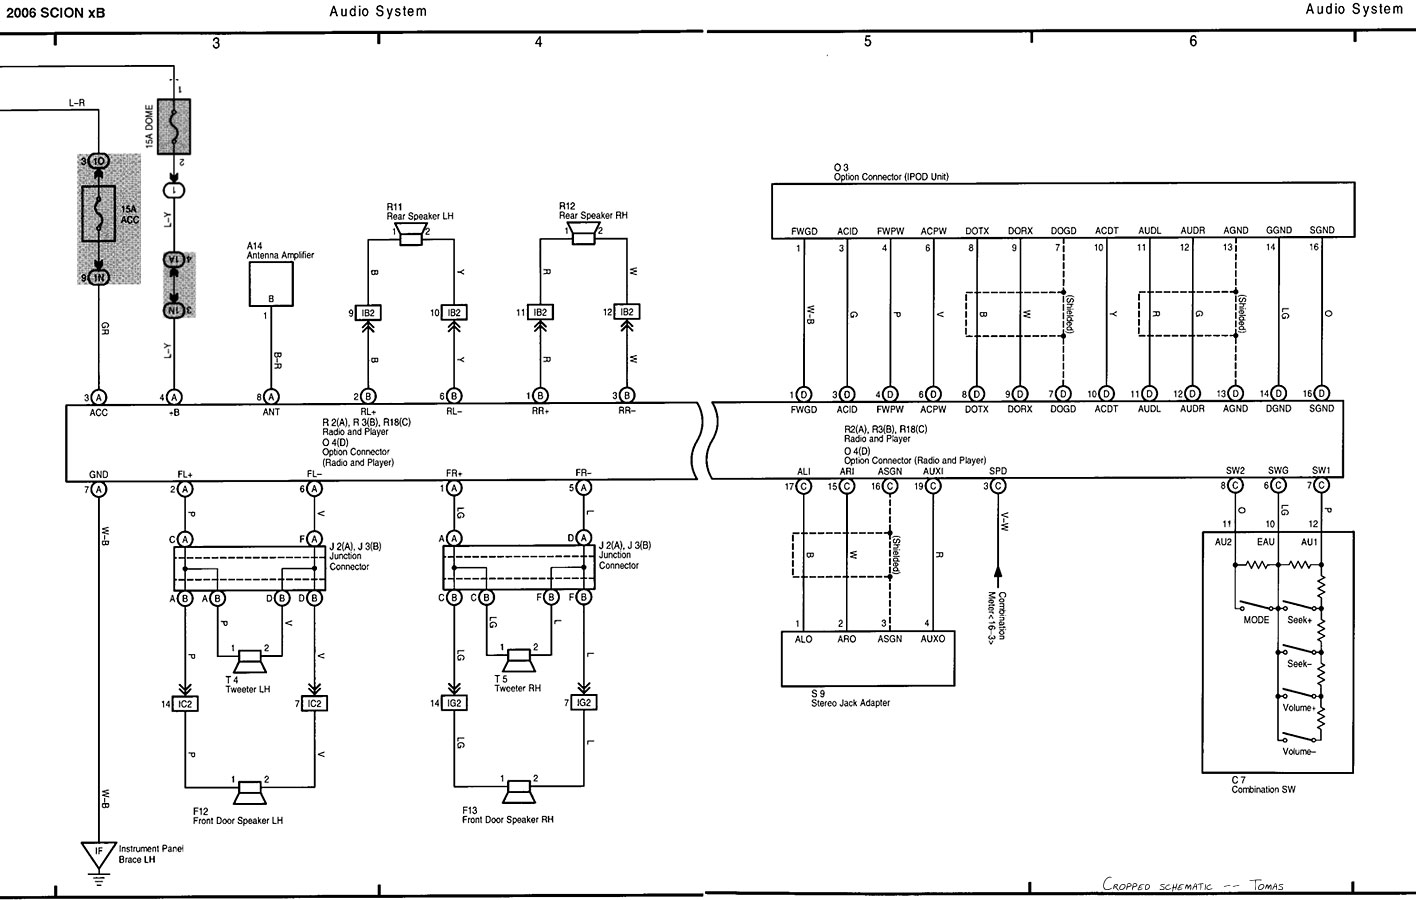 2005 scion tc radio wiring diagram?t\=1508751668 mg tc wiring diagram amphicar wiring diagram \u2022 wiring diagrams j 2005 scion xb fuse box diagram at soozxer.org